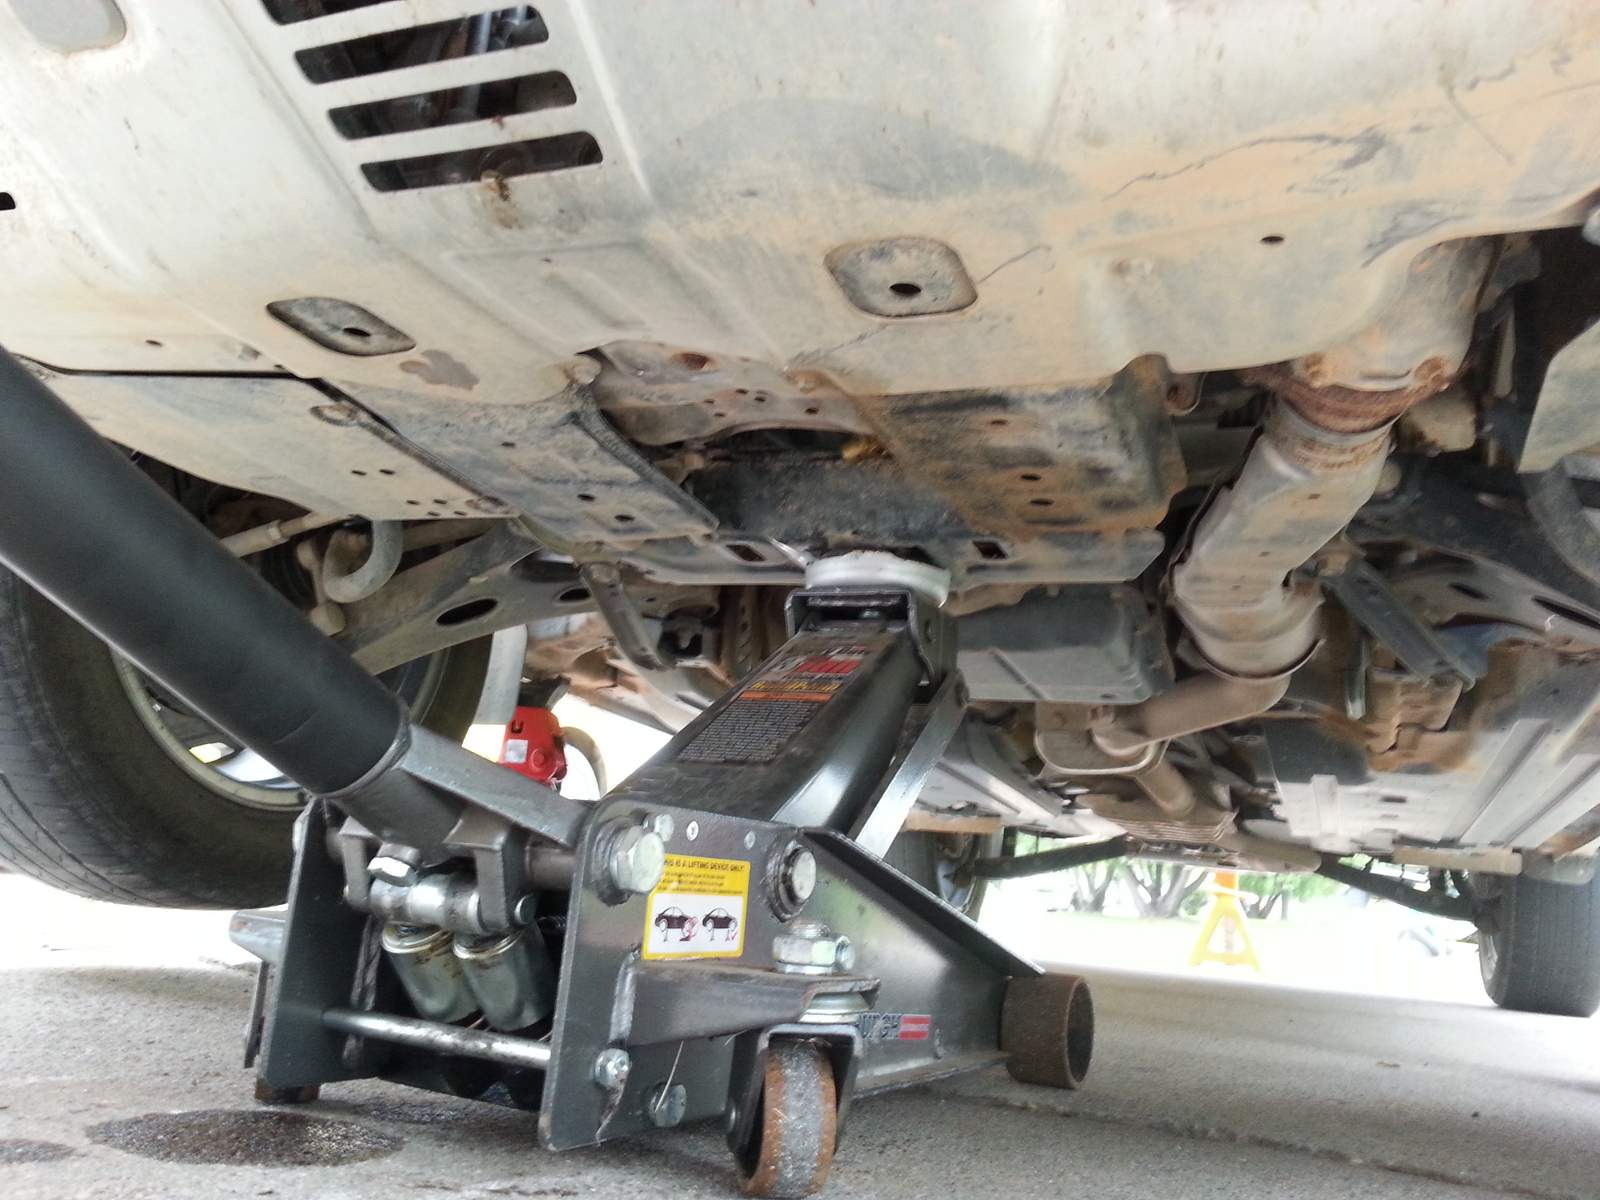 Subaru Forester Fuel Filterfiat Punto Start Soms Niet Autoweek Nl Wrx Filter Jack Points On A Geothunder Projects